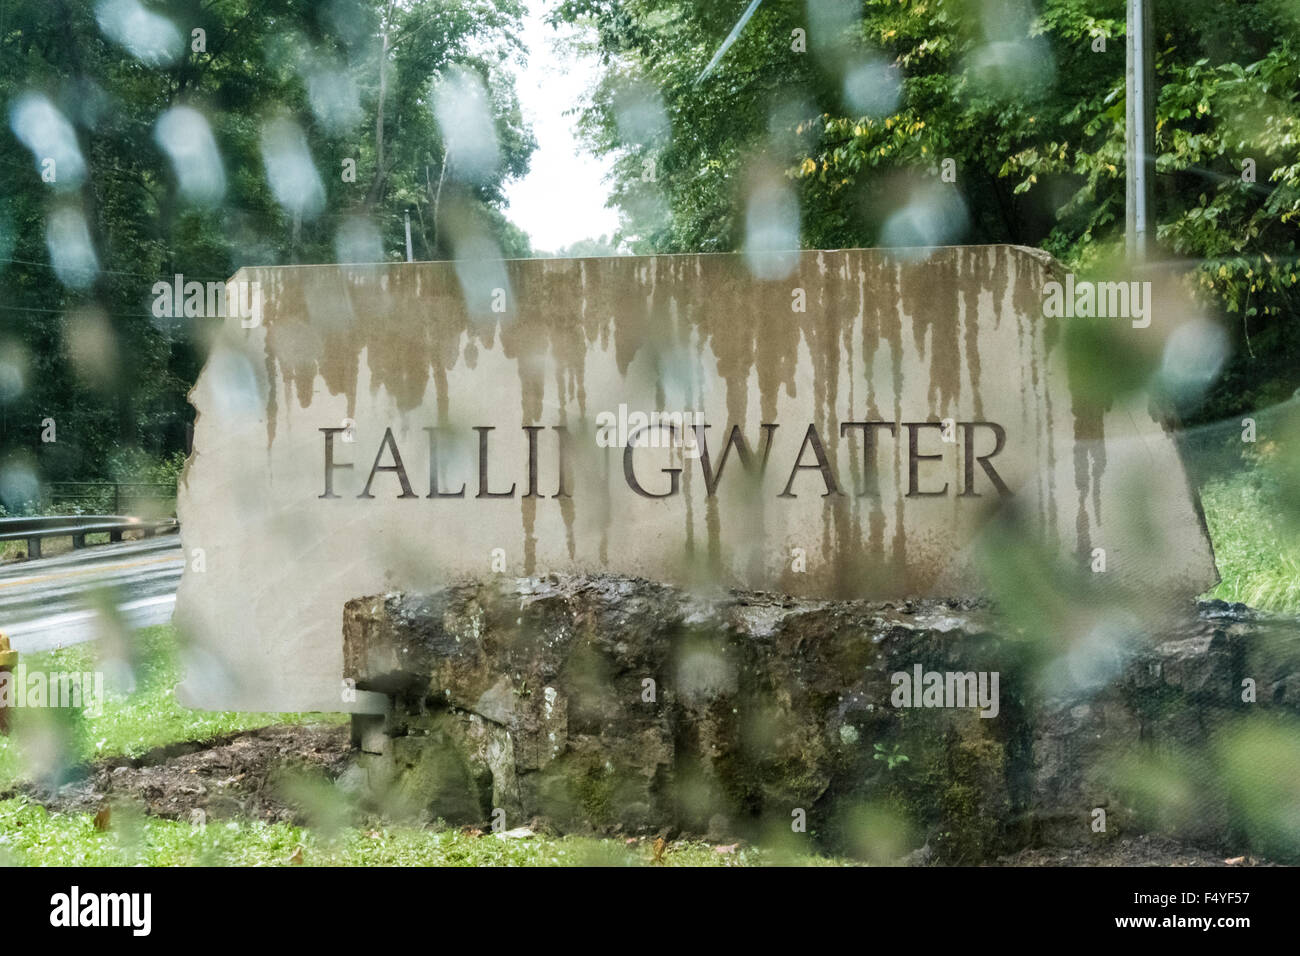 Fallingwater road sign in the rain. - Stock Image